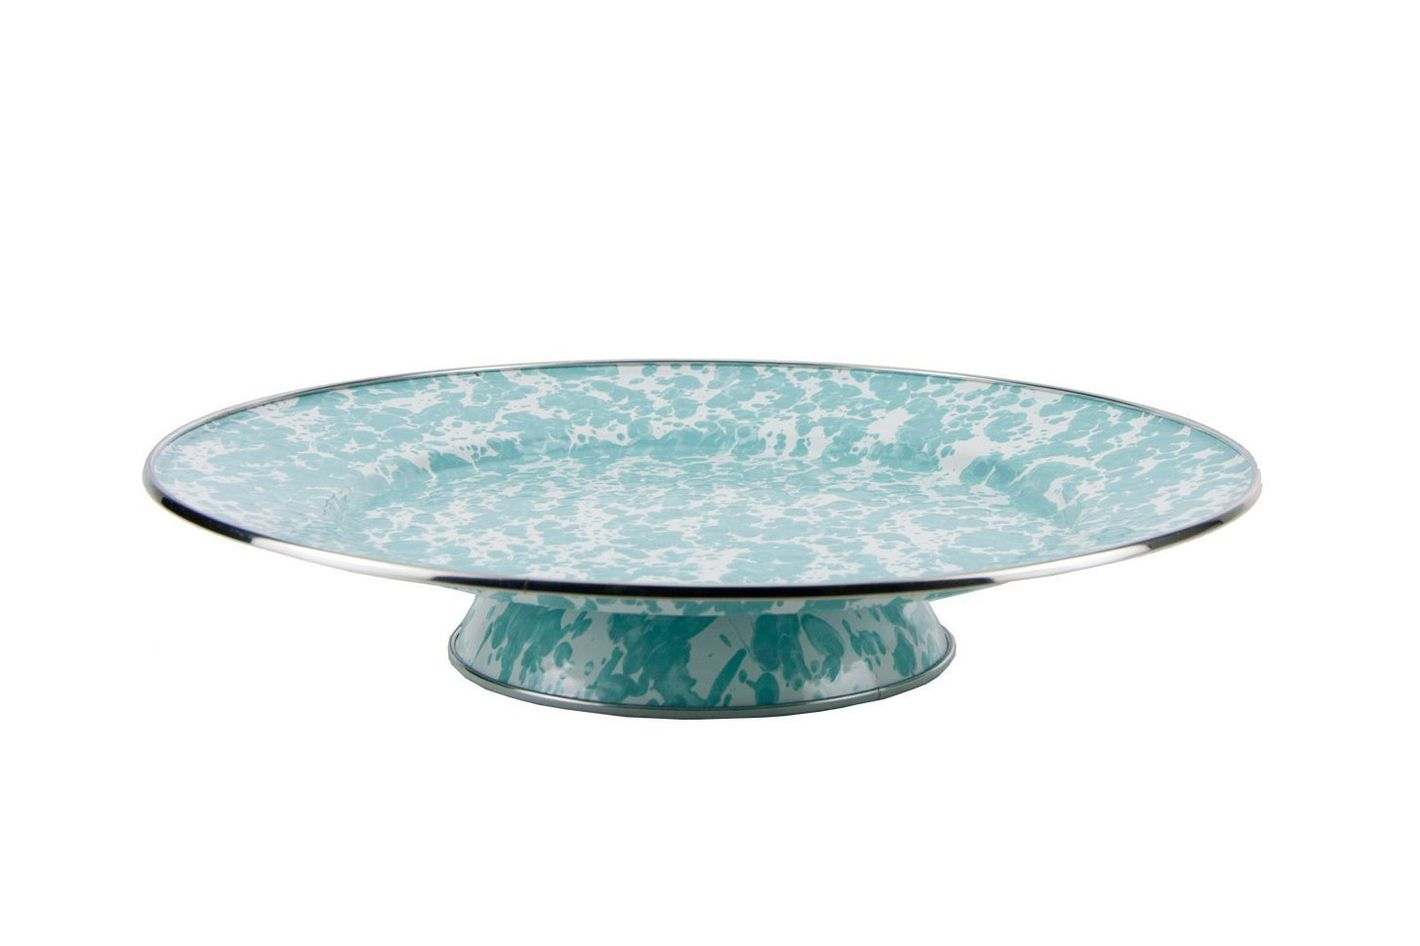 Enamelware — Sea Glass Teal Swirl Pattern, 12.5 Inch Cake Plate